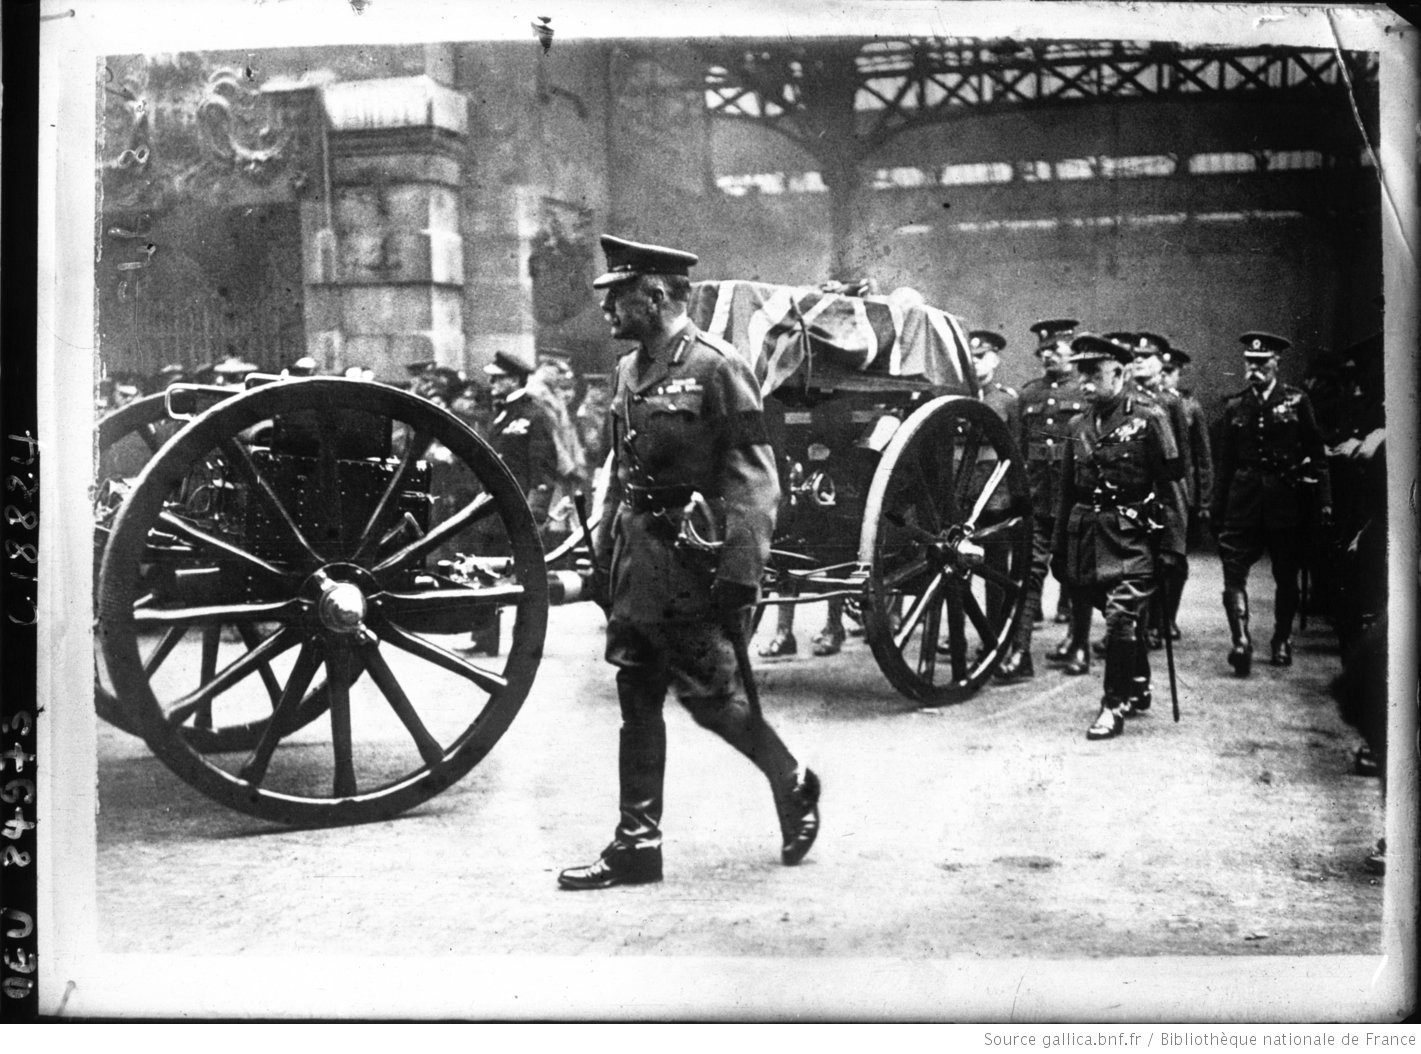 Unknown Warrior: Sir Douglas Haig walks alongside the gun carriage transporting the coffin of the Unknown Warrior on its journey to Westminster Abbey in November 1920. https://t.co/ToXPcfwJVG